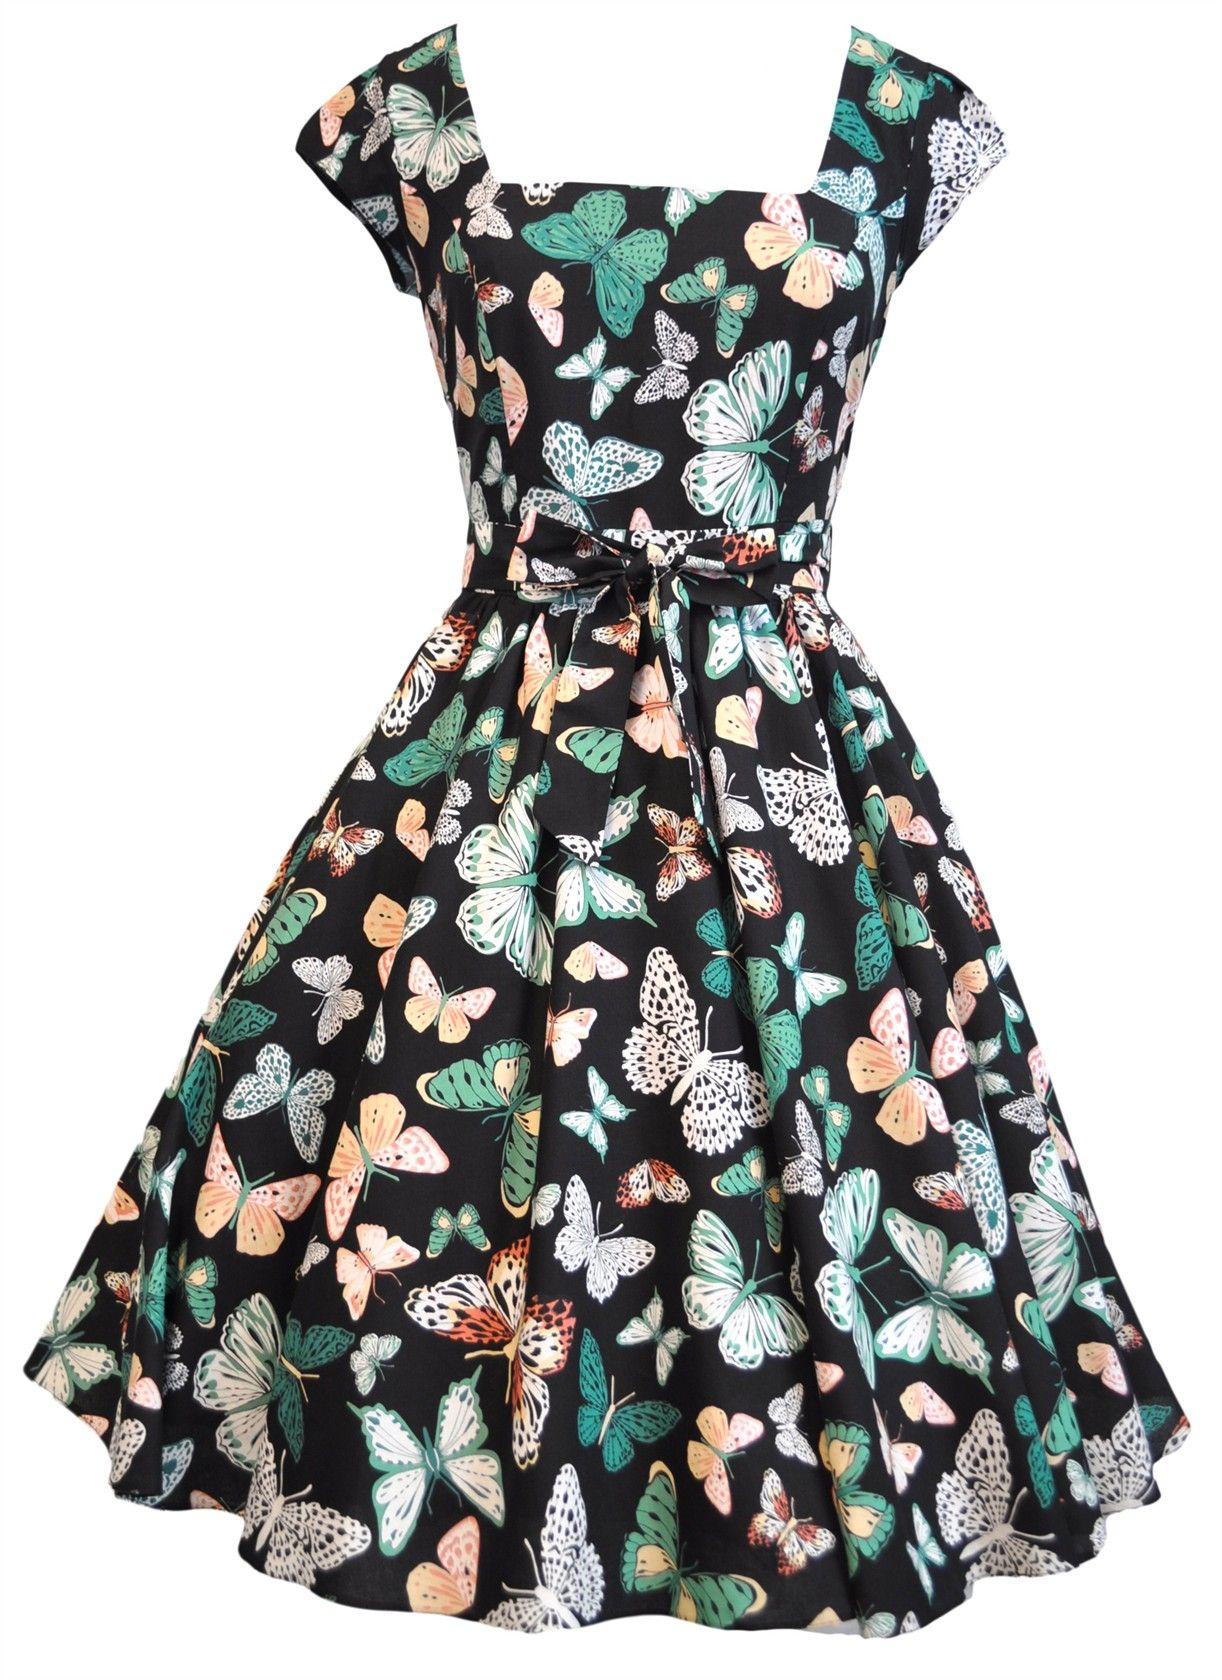 May 26th Suit Up Swing Style: Cute Butterfly On Black Swing Dress